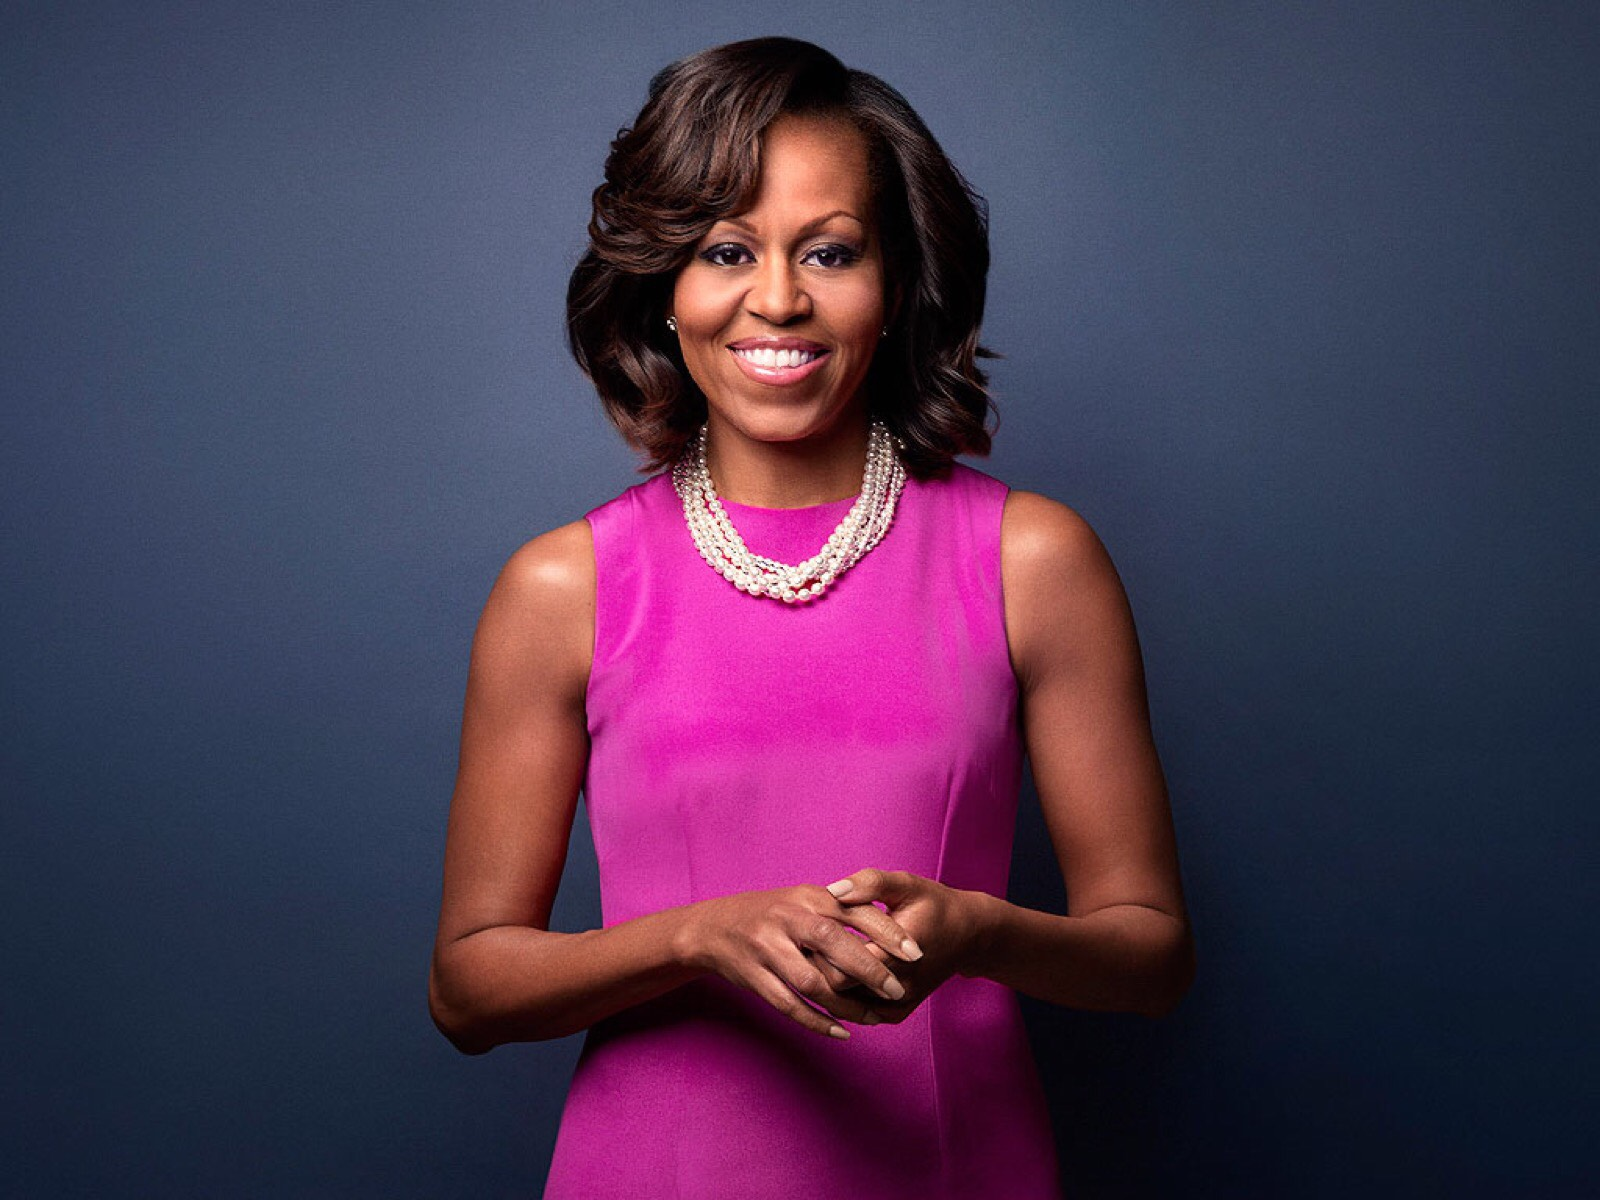 Michelle Obama to Talk Empowerment at Apple Conference